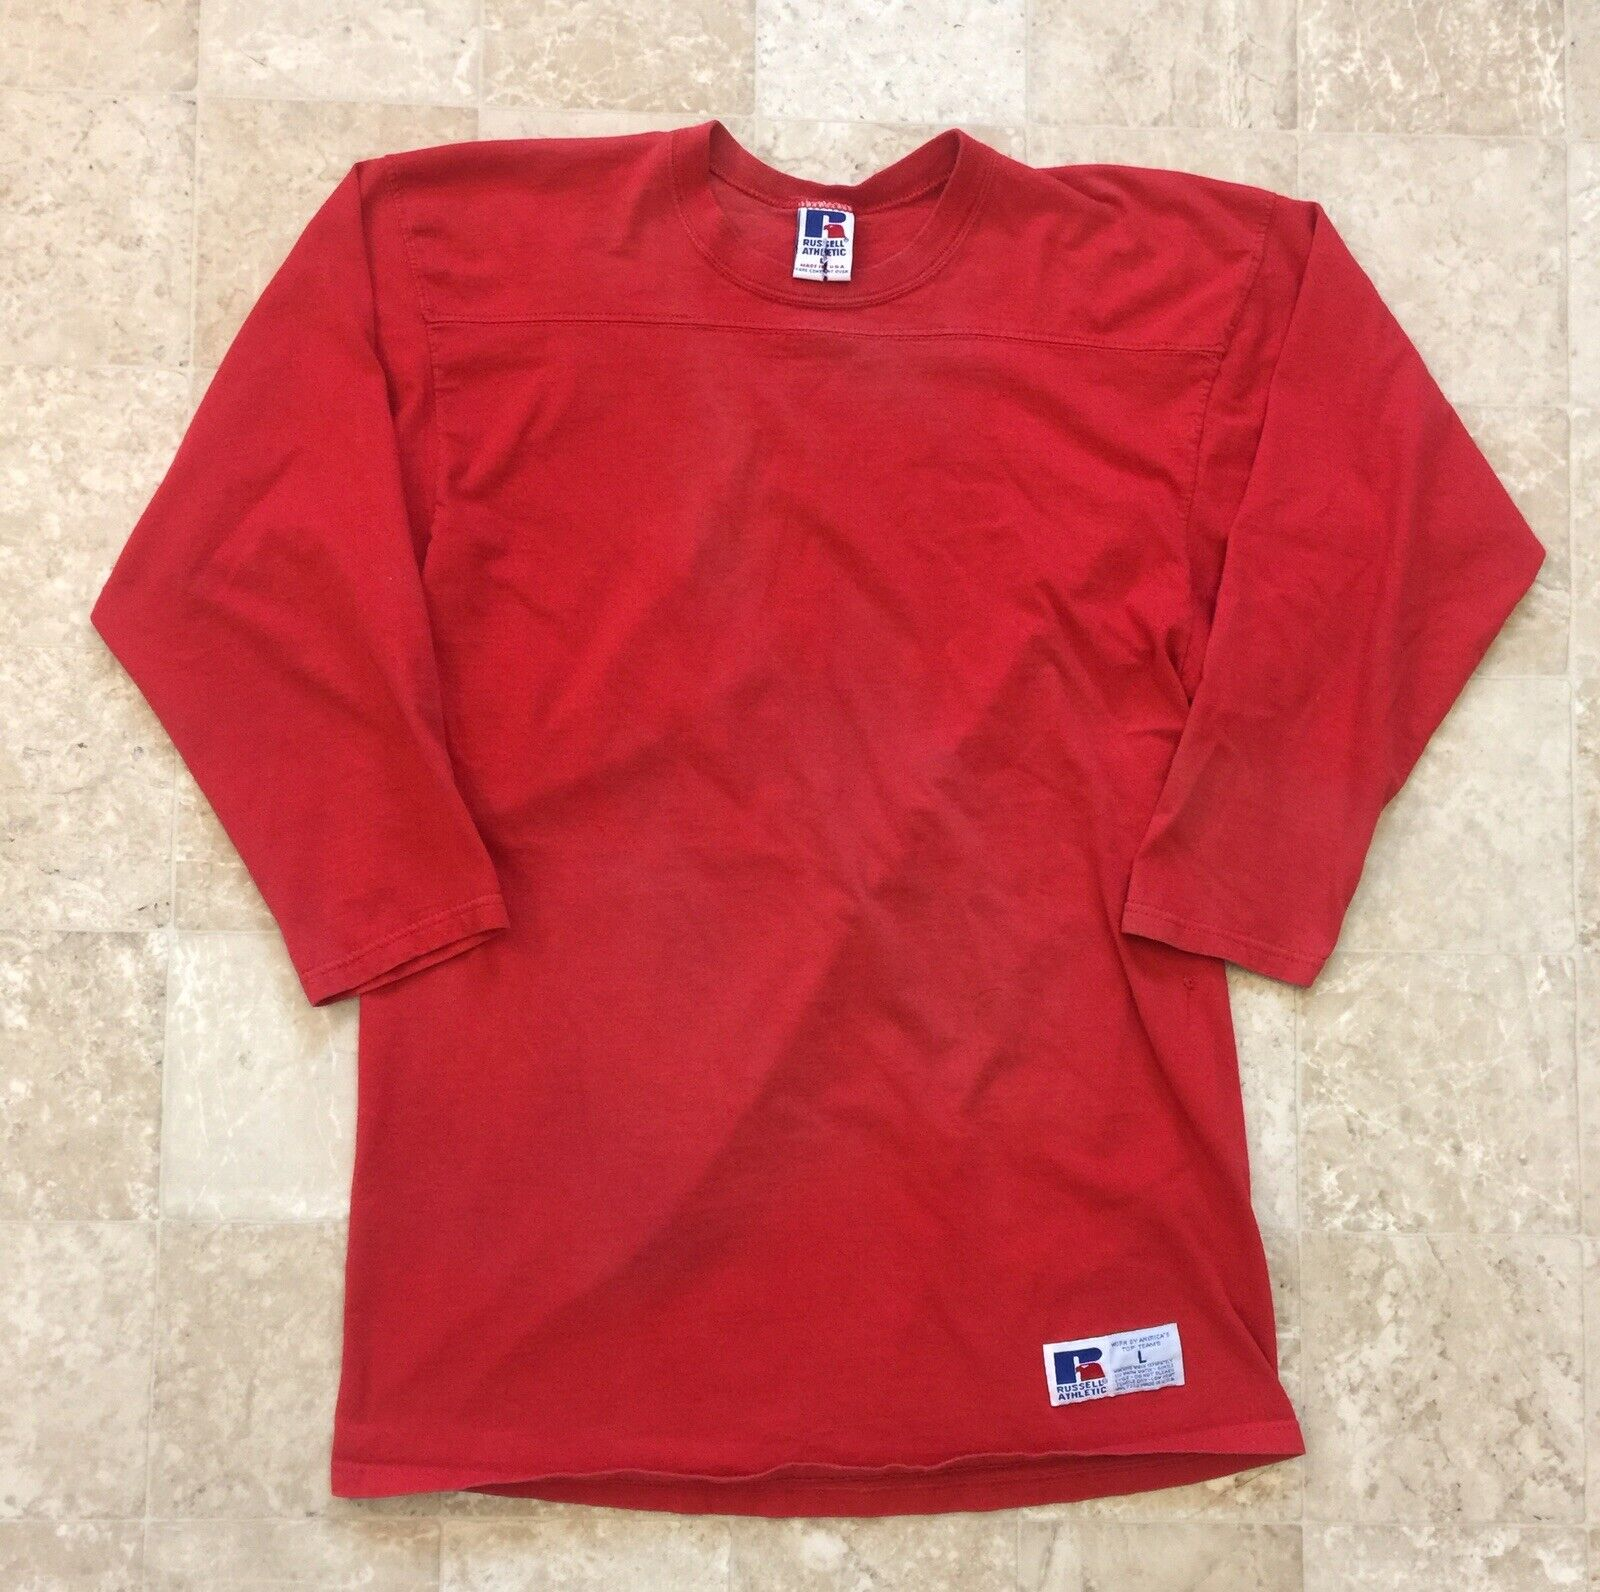 VINTAGE 80's RUSSELL BRAND 3/4 LONG SLEEVE RED T-SHIRT - WOMENS SIZE LARGE USA